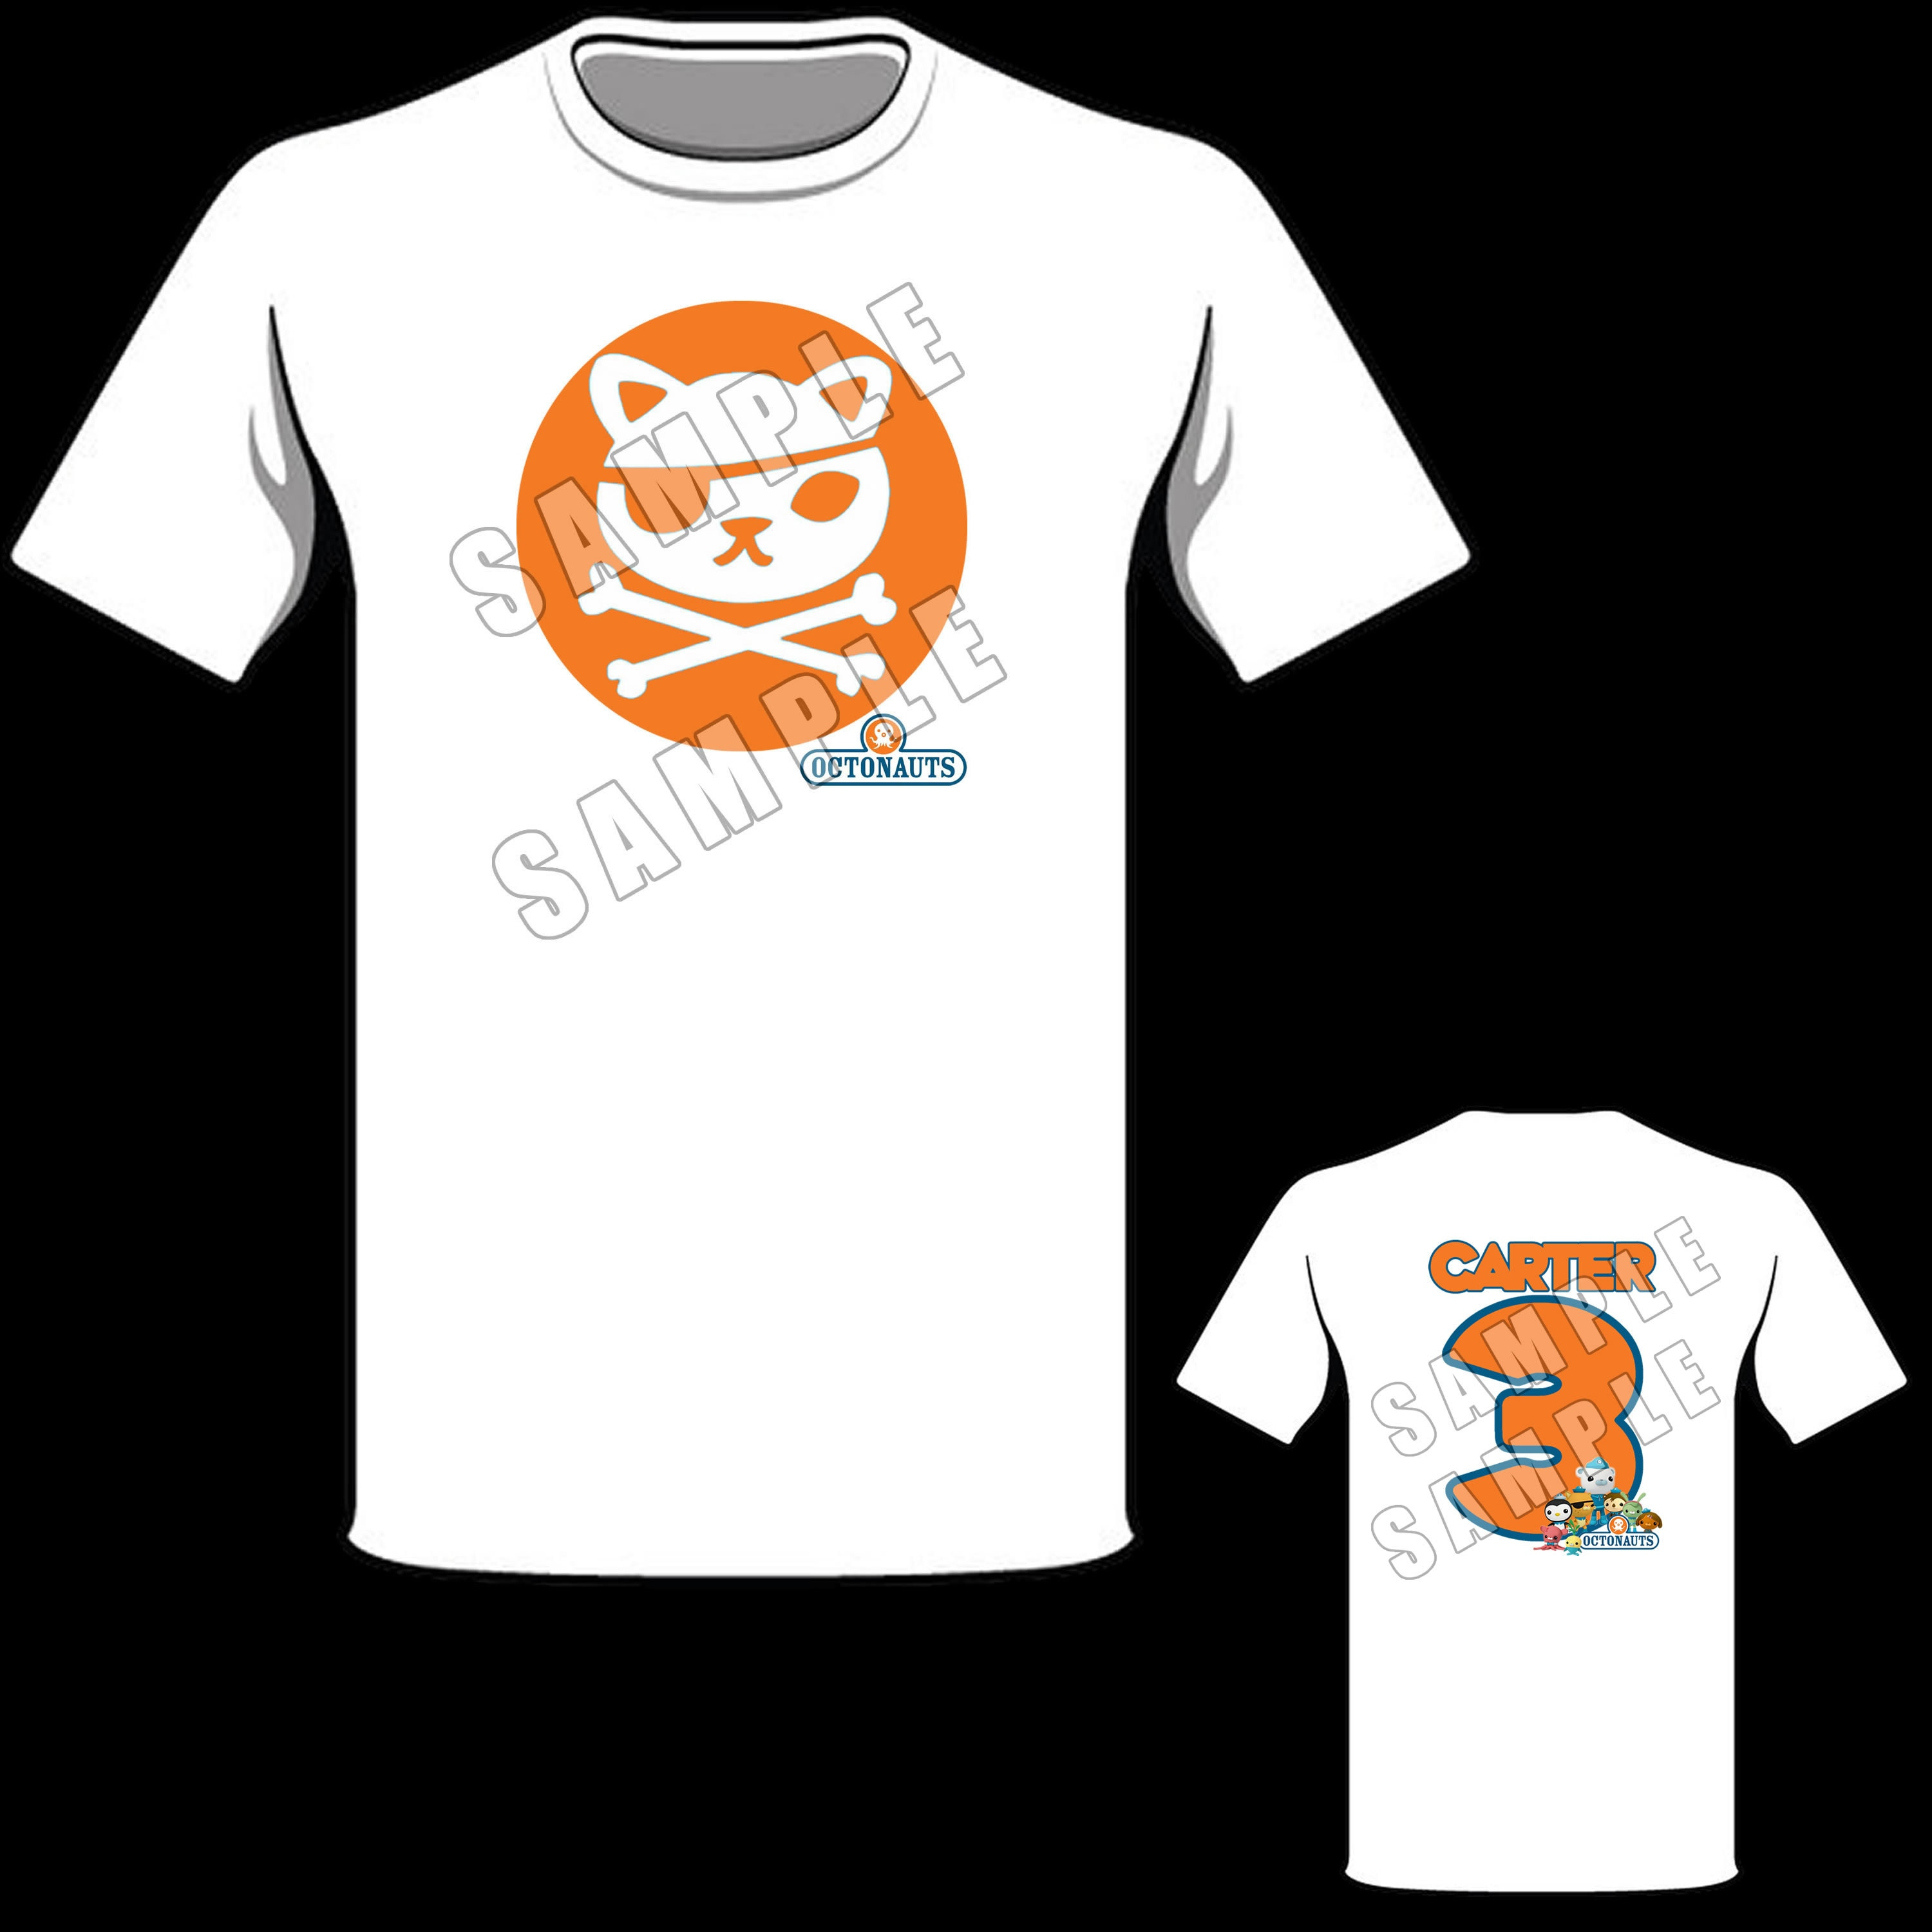 Birthday T-Shirt Party Favor Personalized Octonauts